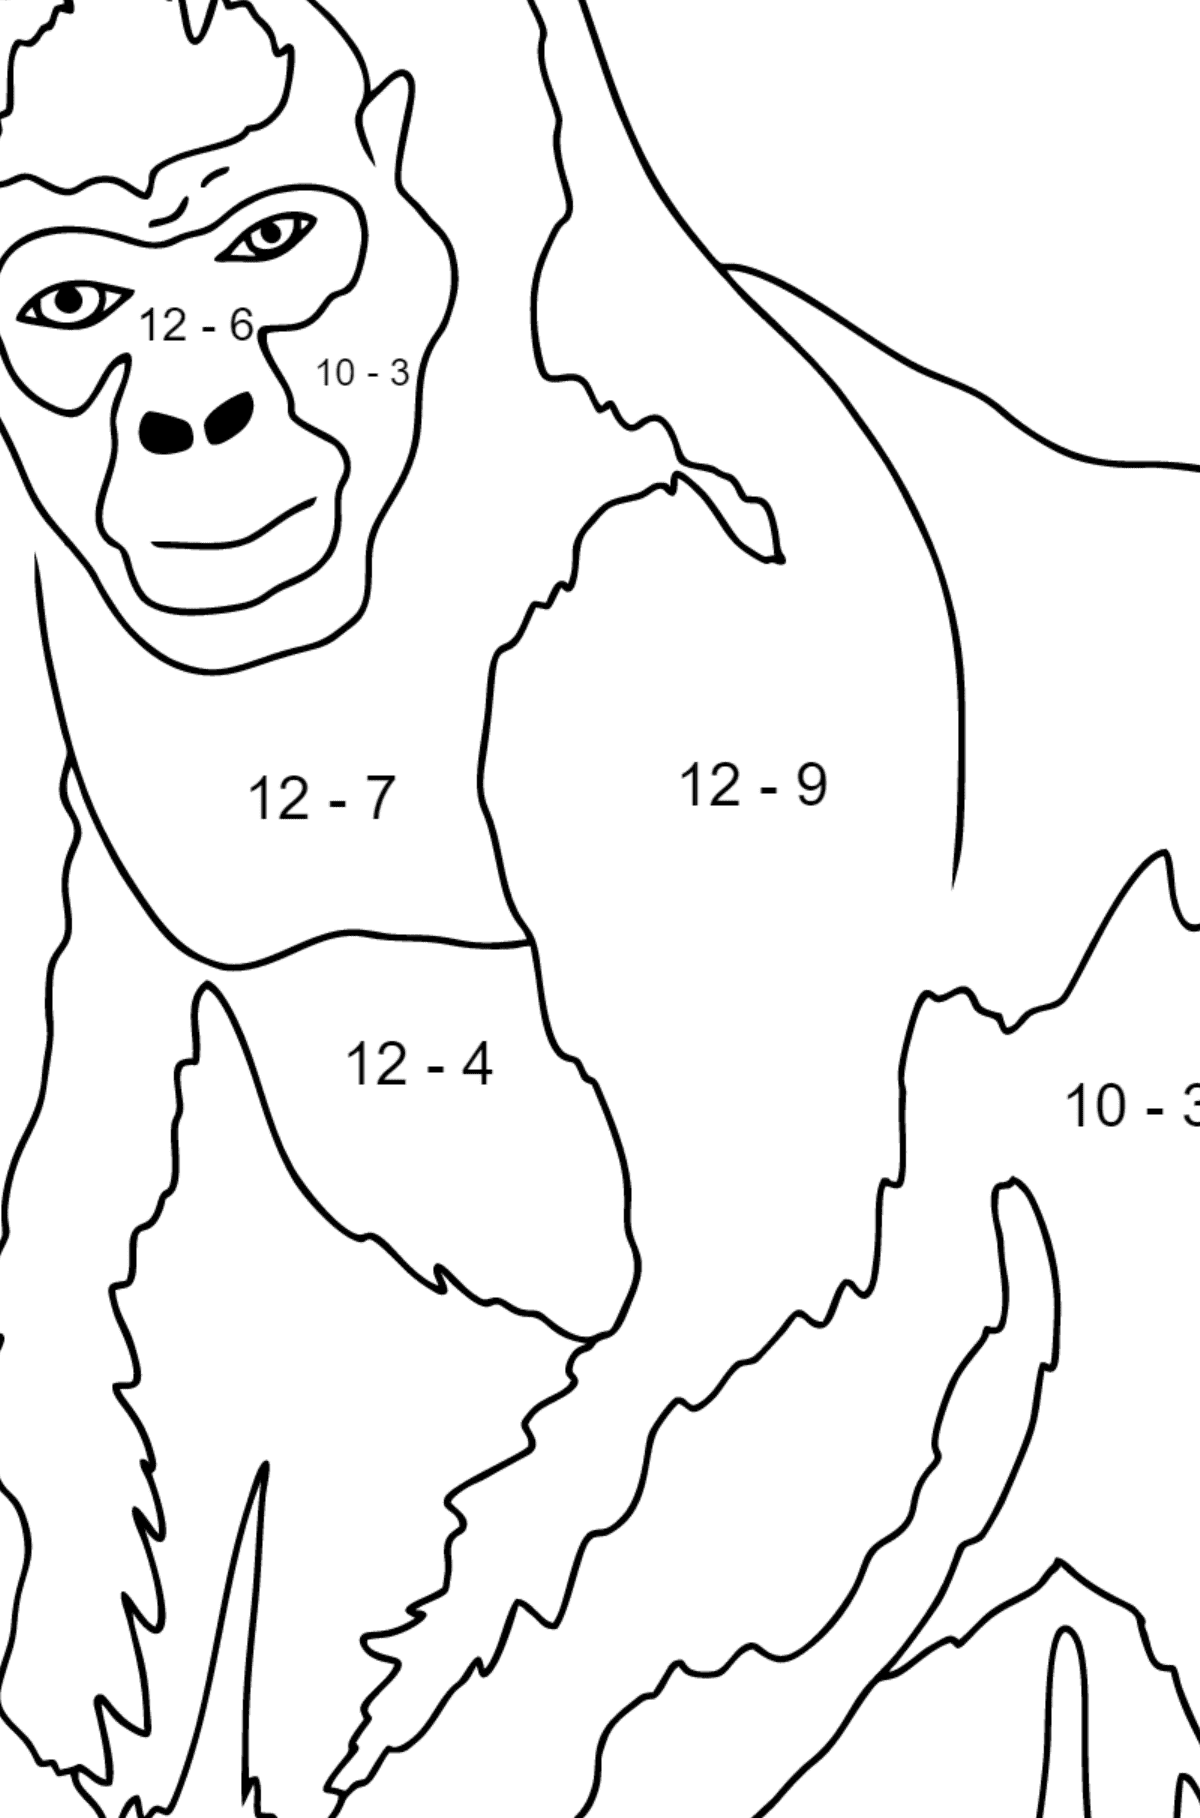 Coloring Page - A Real Gorilla - Math Coloring - Subtraction for Children